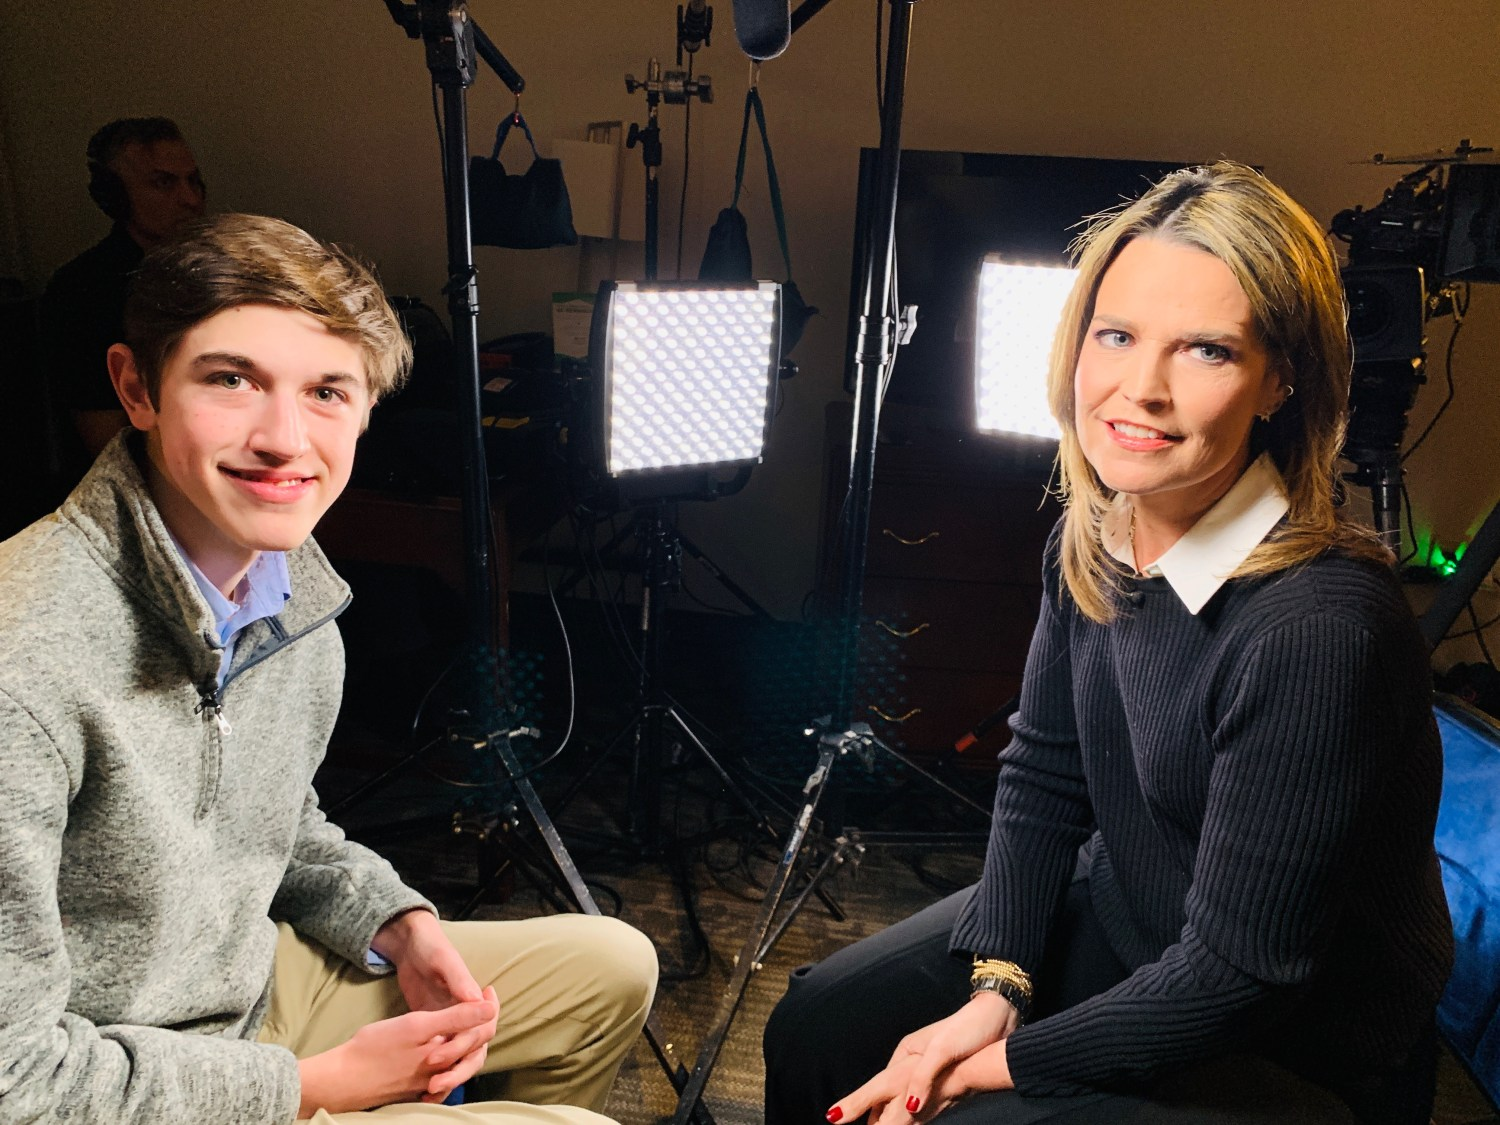 """Nick Sandmann (left) appeared in an interview with """"Today"""" show cohost Savannah Guthrie on Wednesday morning. (Courtesy of """"Today"""")"""